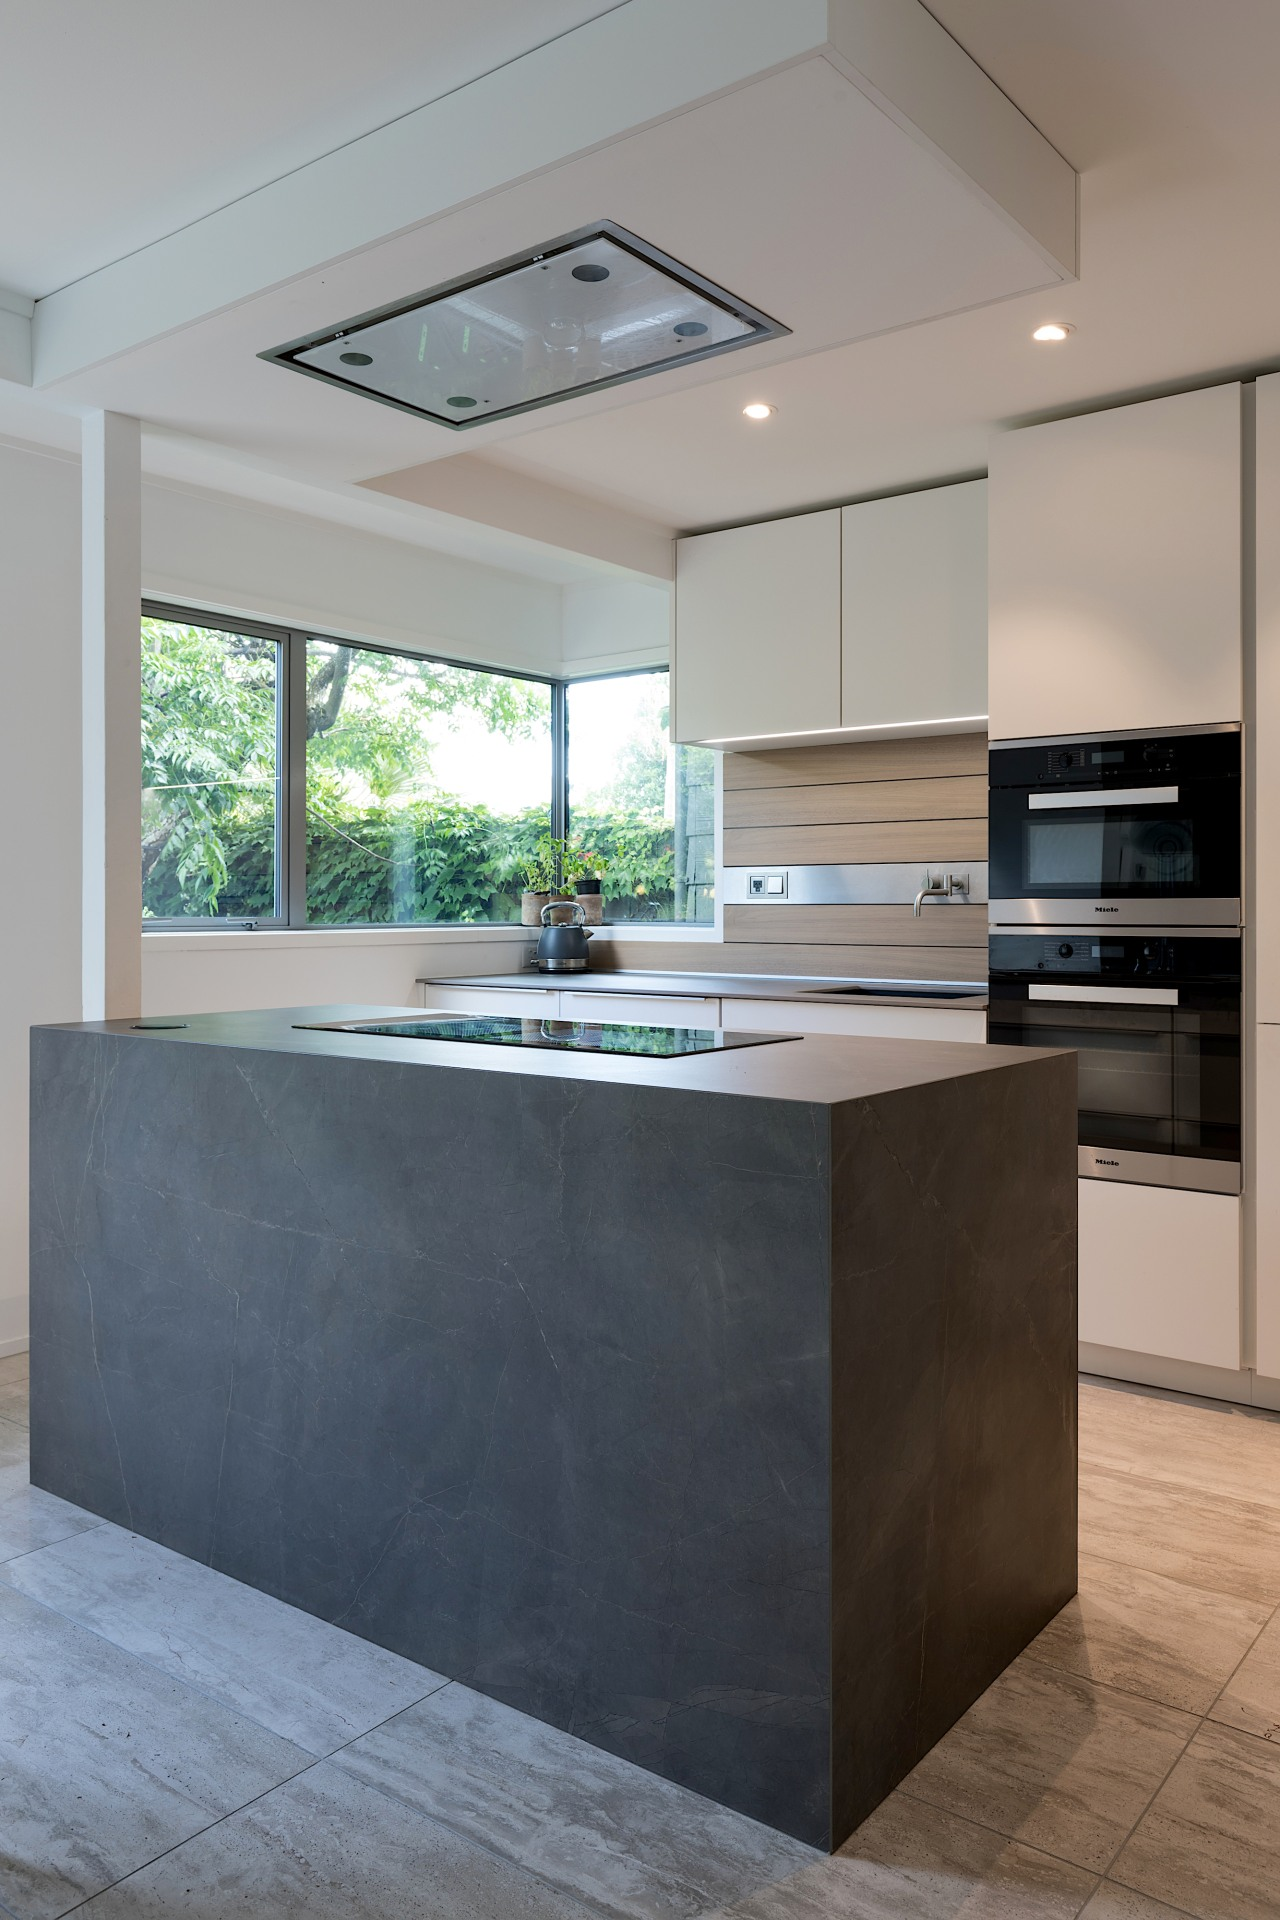 The bulkhead with extractor echoes the proportions of architecture, building, cabinetry, ceiling, concrete, countertop, design, floor, flooring, furniture, home, house, interior design, kitchen, kitchen stove, material property, plywood, property, real estate, room, table, tile, gray